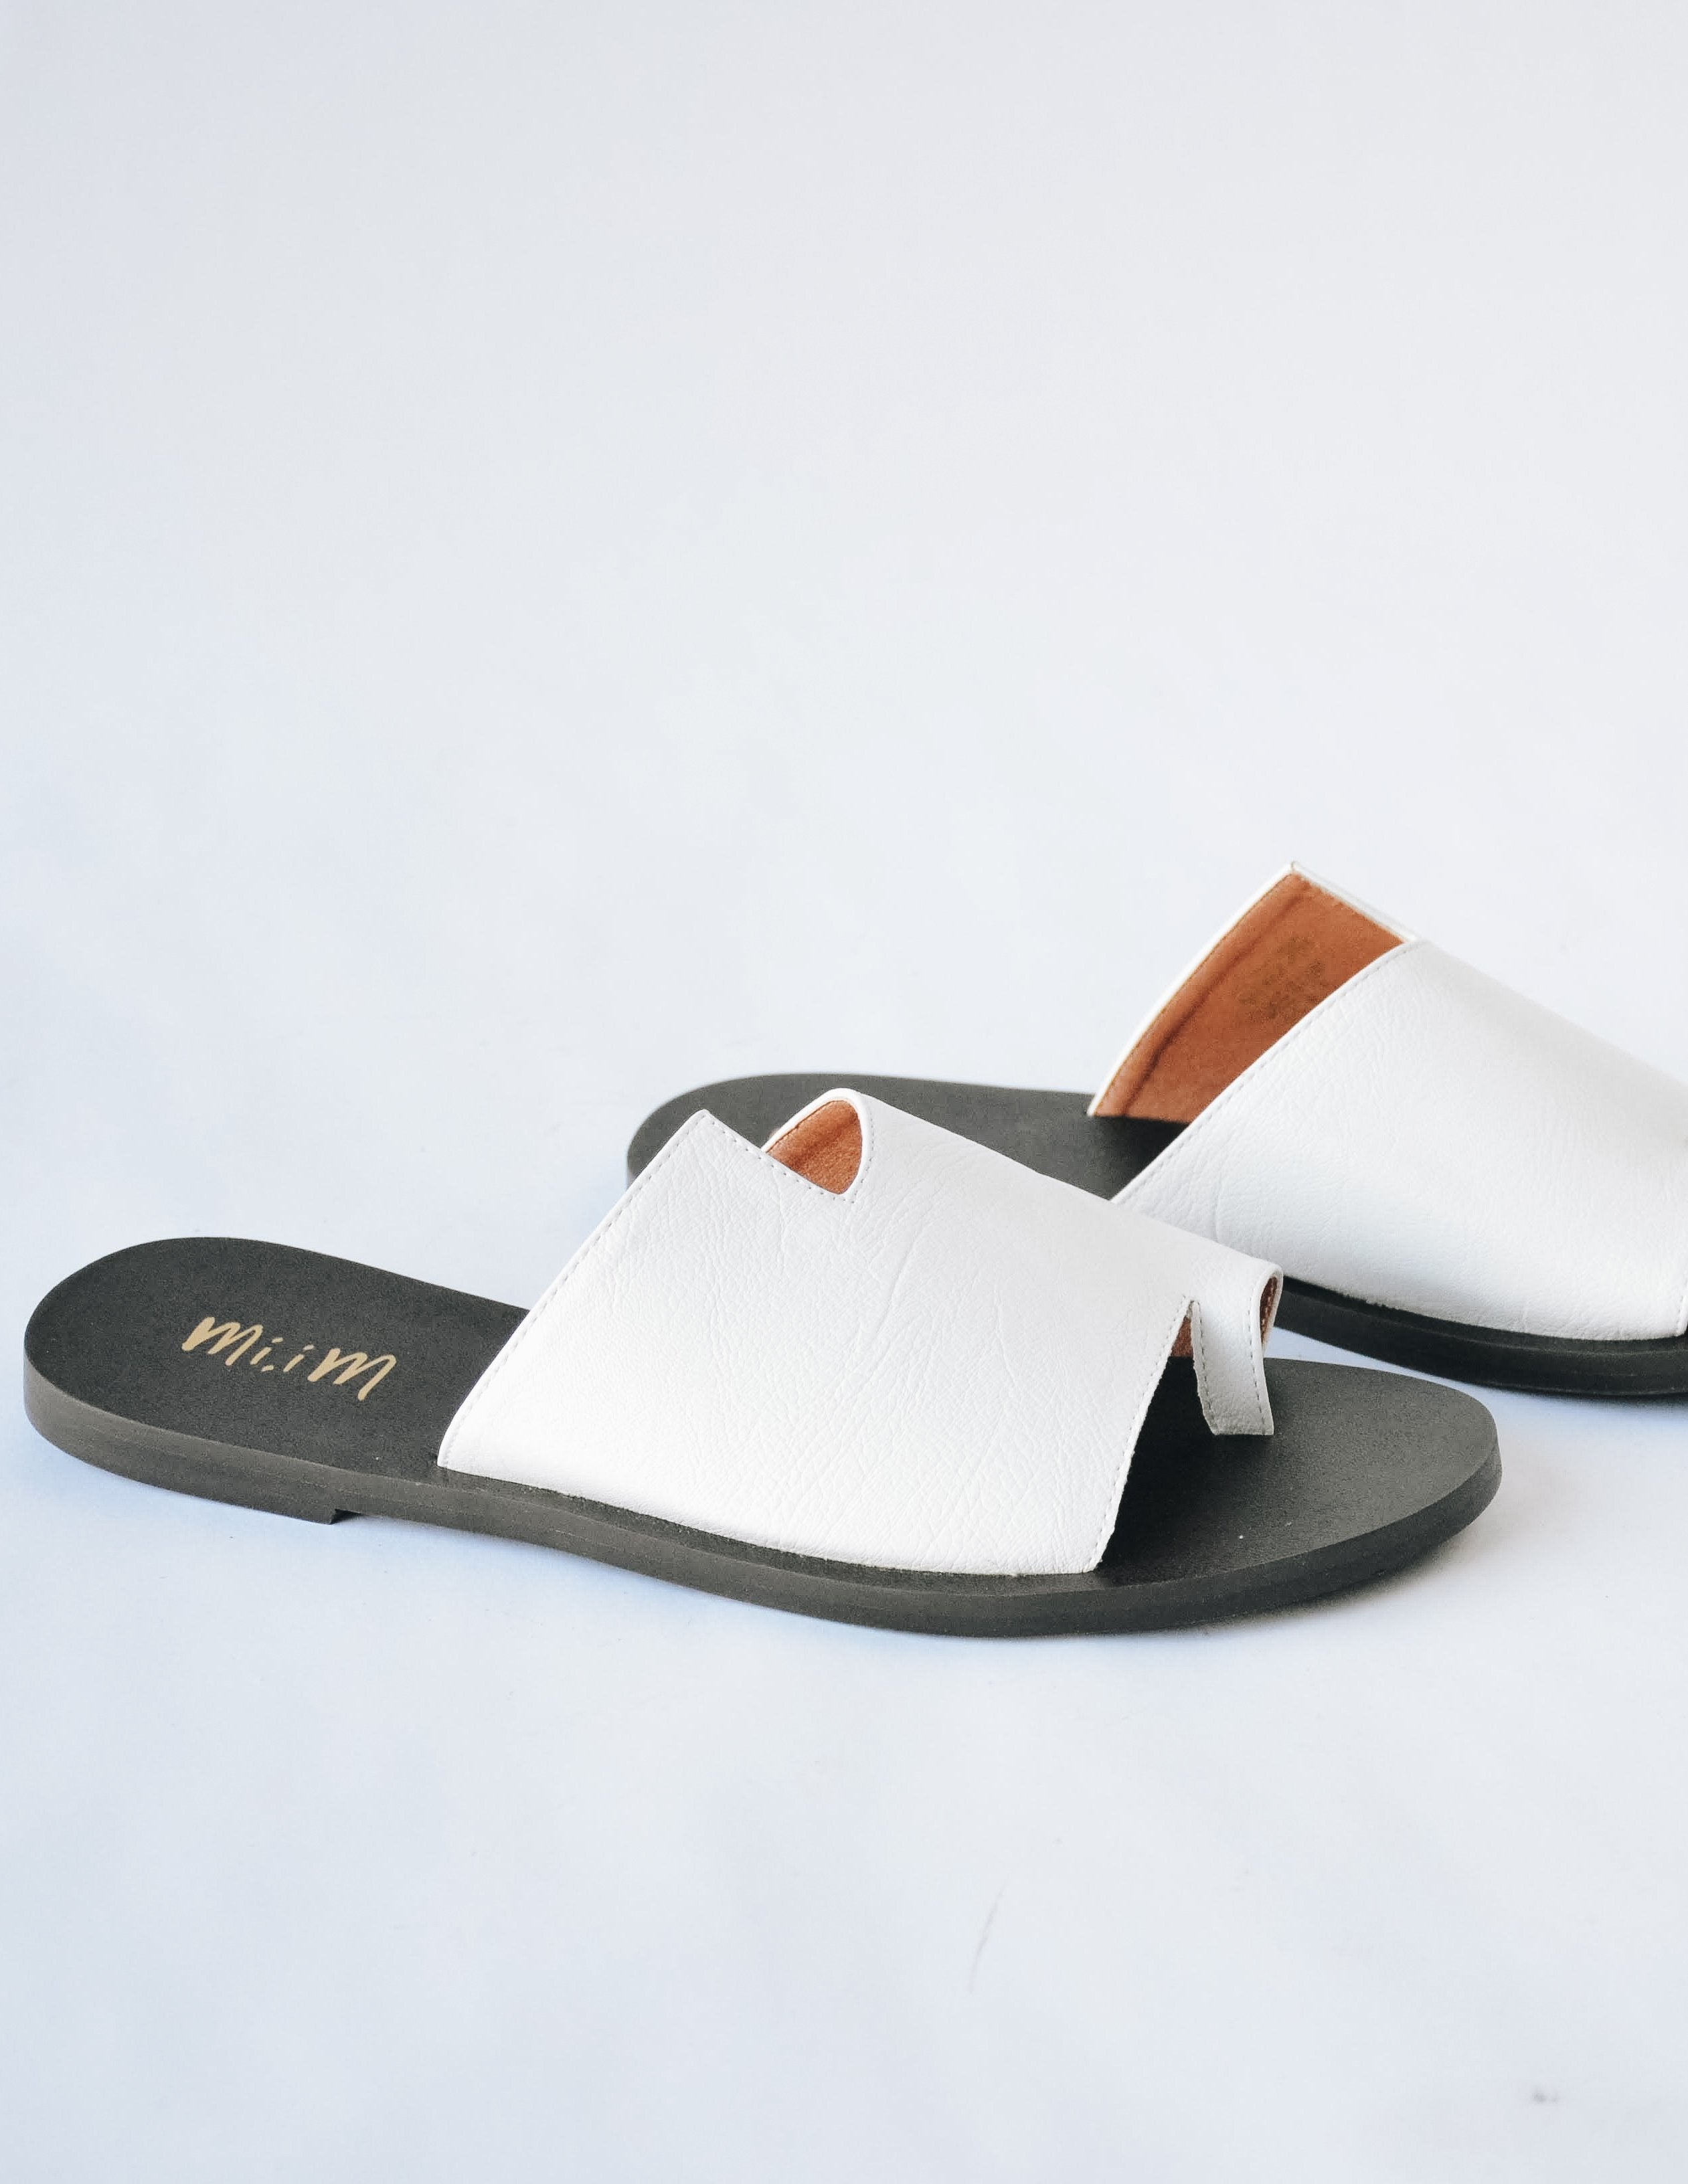 White addison sandal with black sole